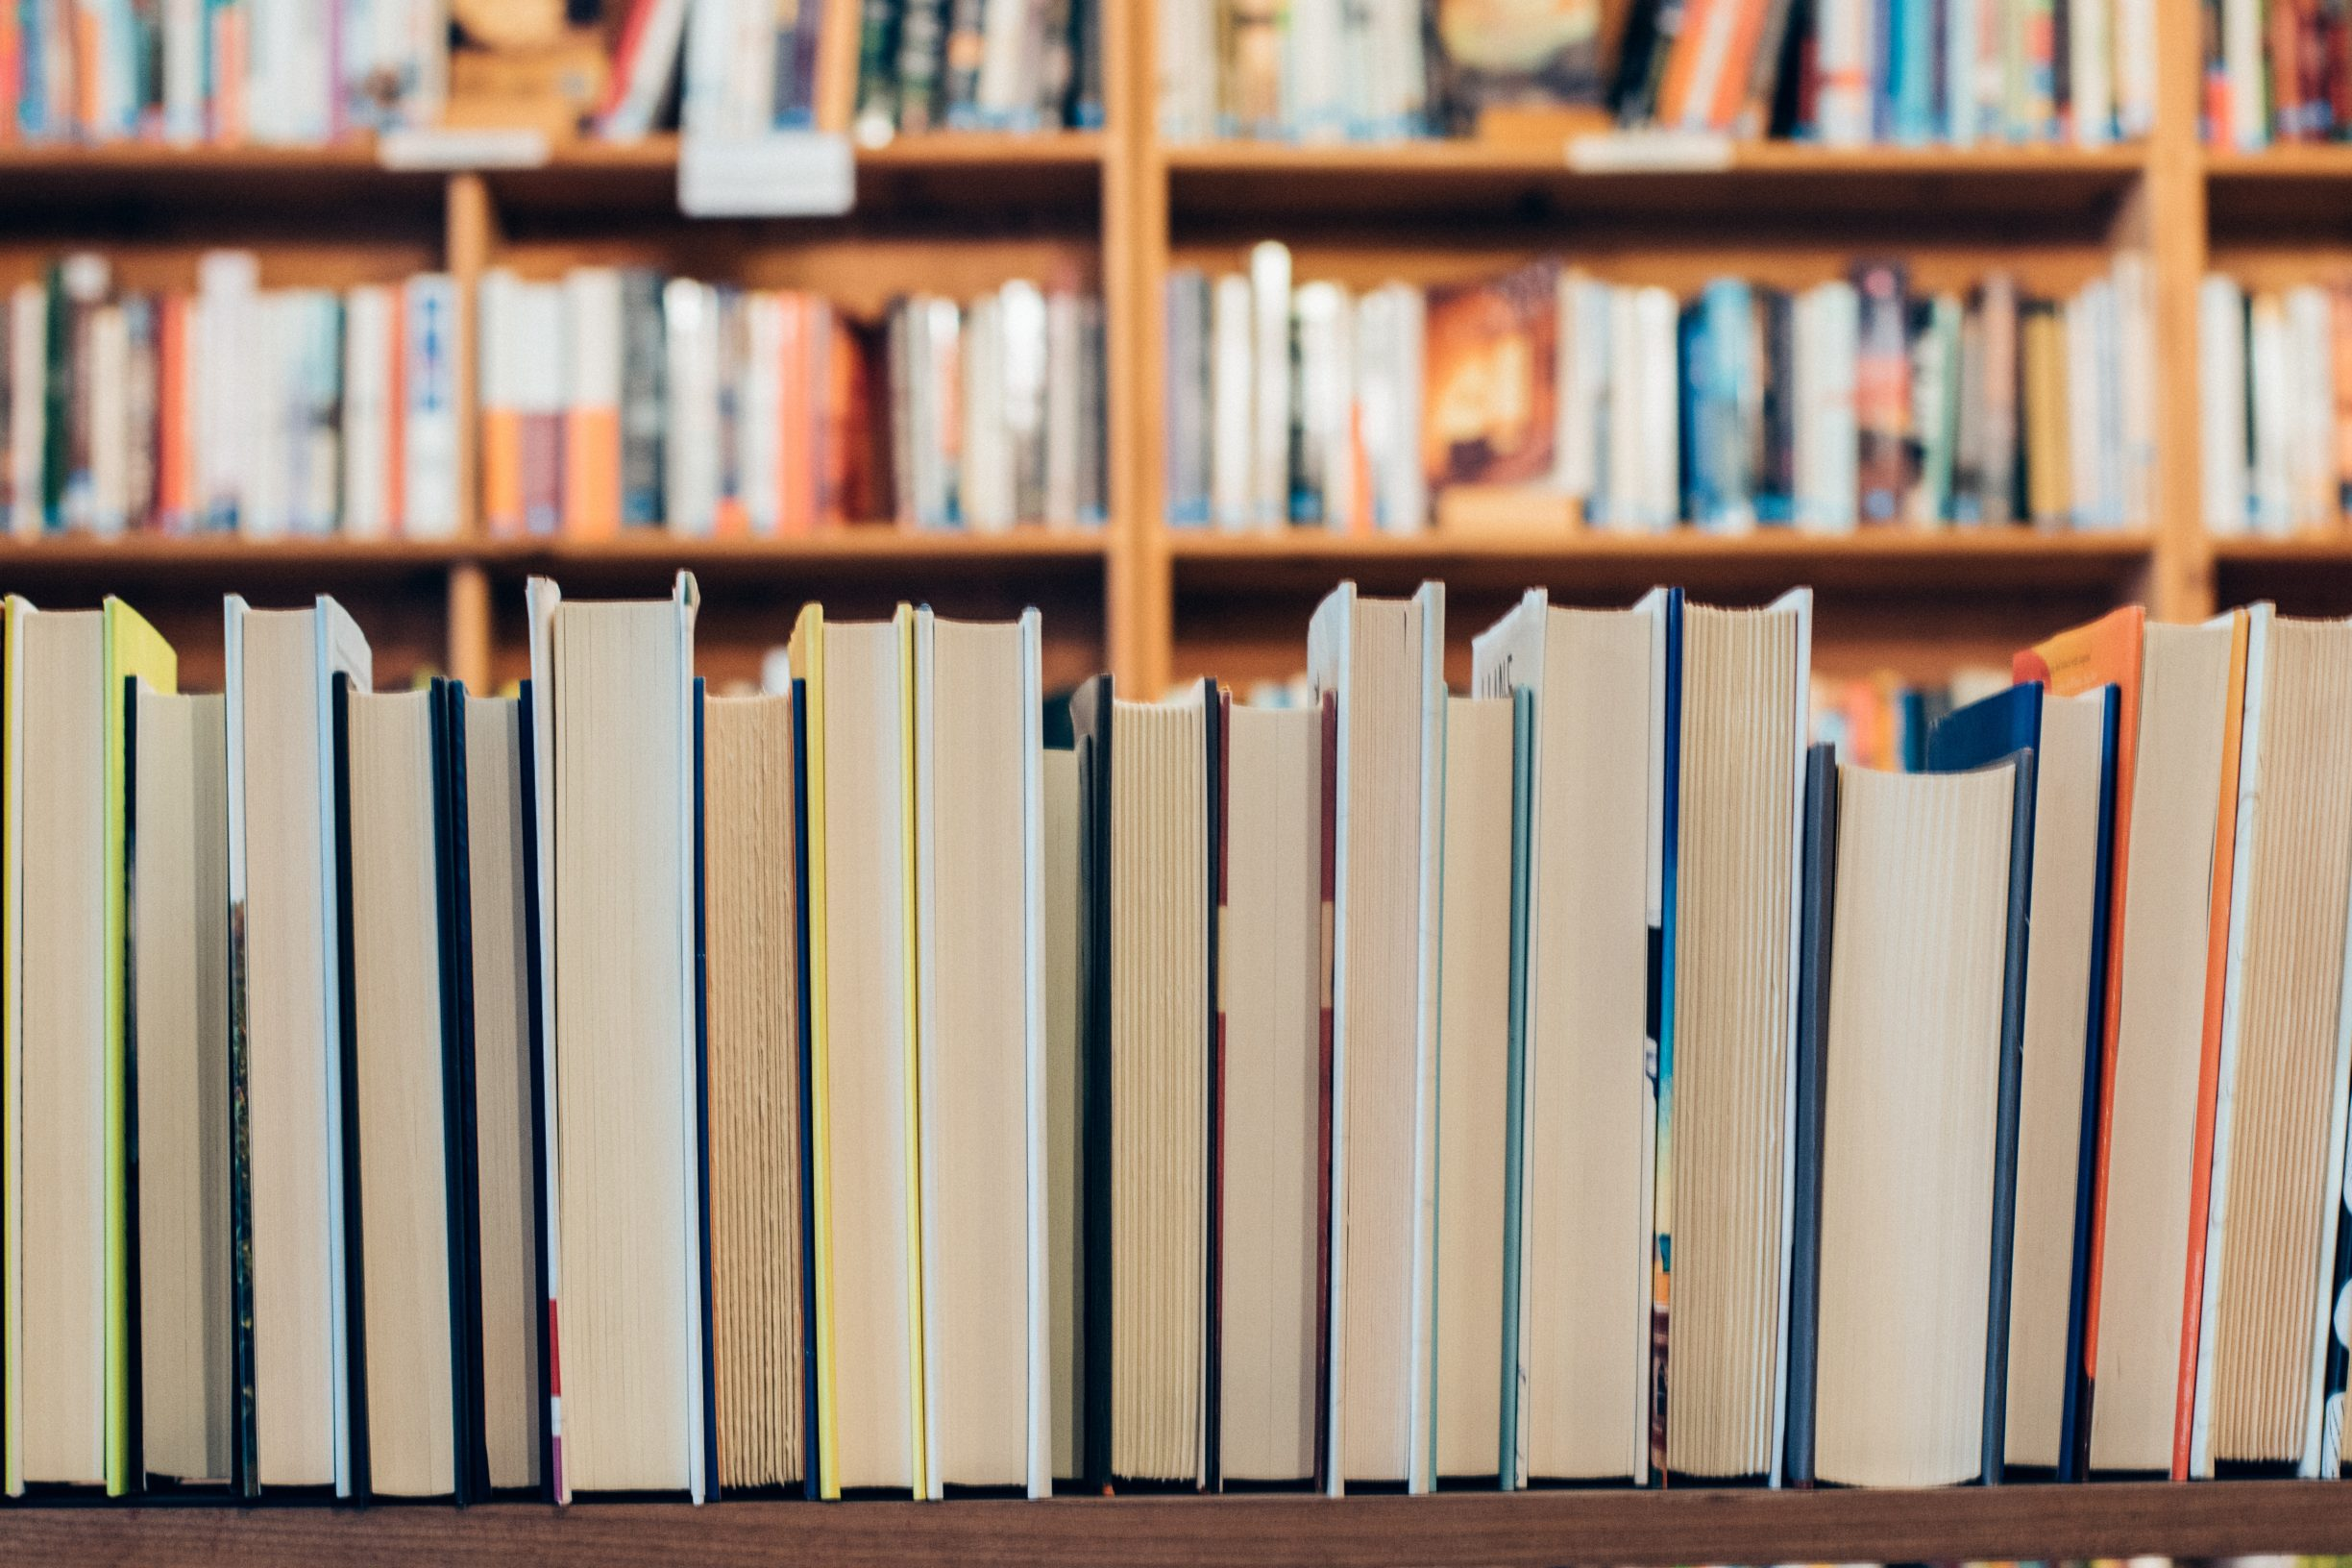 Some of the books I am ashamed to say I haven't read yet, but that are at the top of my reading list